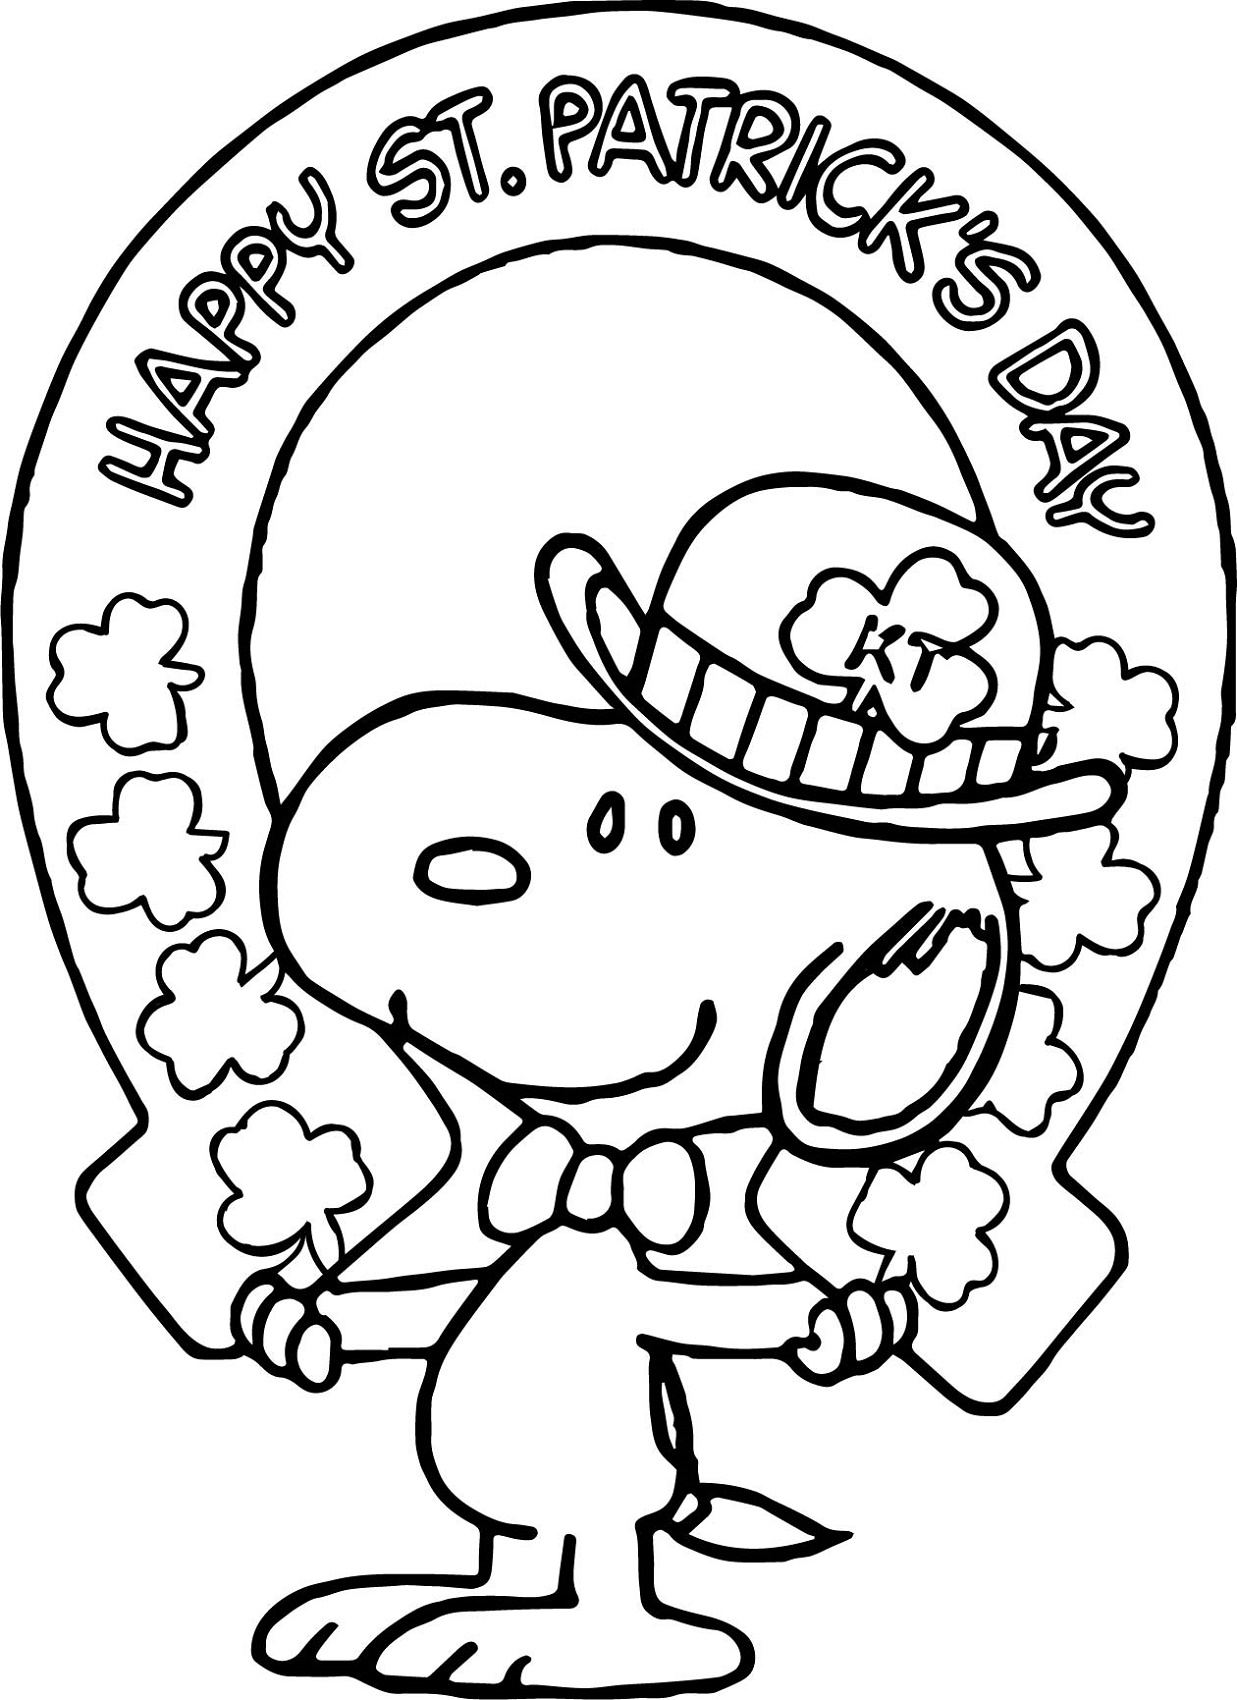 St Patrick's Day Coloring Pages Snoopy